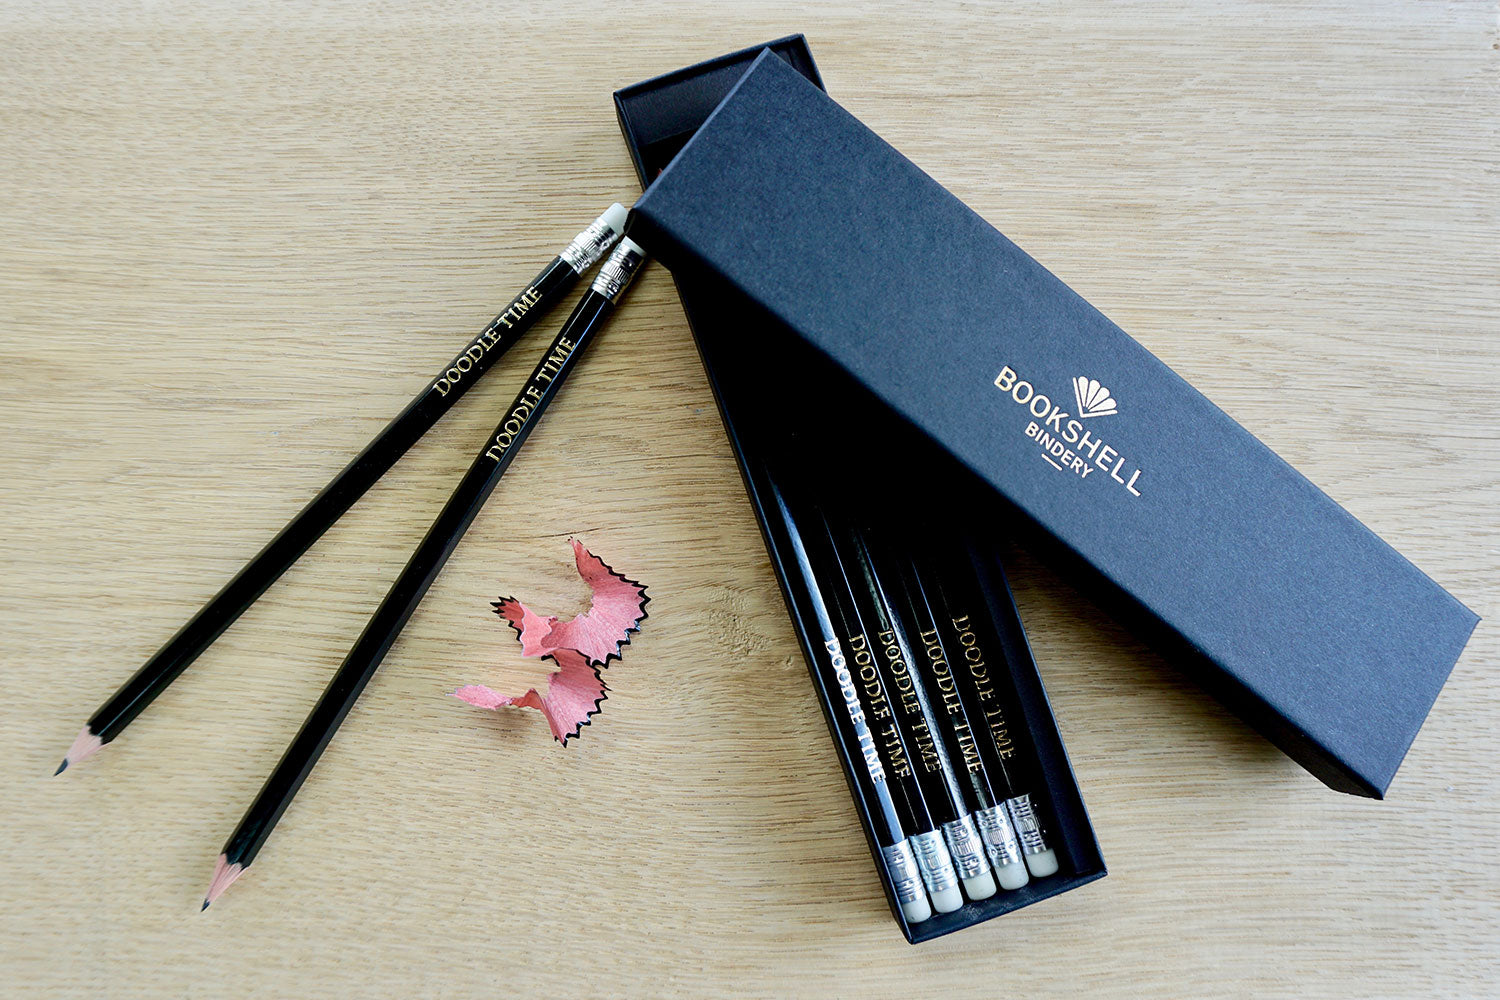 Custom pencils from Bookshell ready to gift in beautiful packaging, 'doodle time'